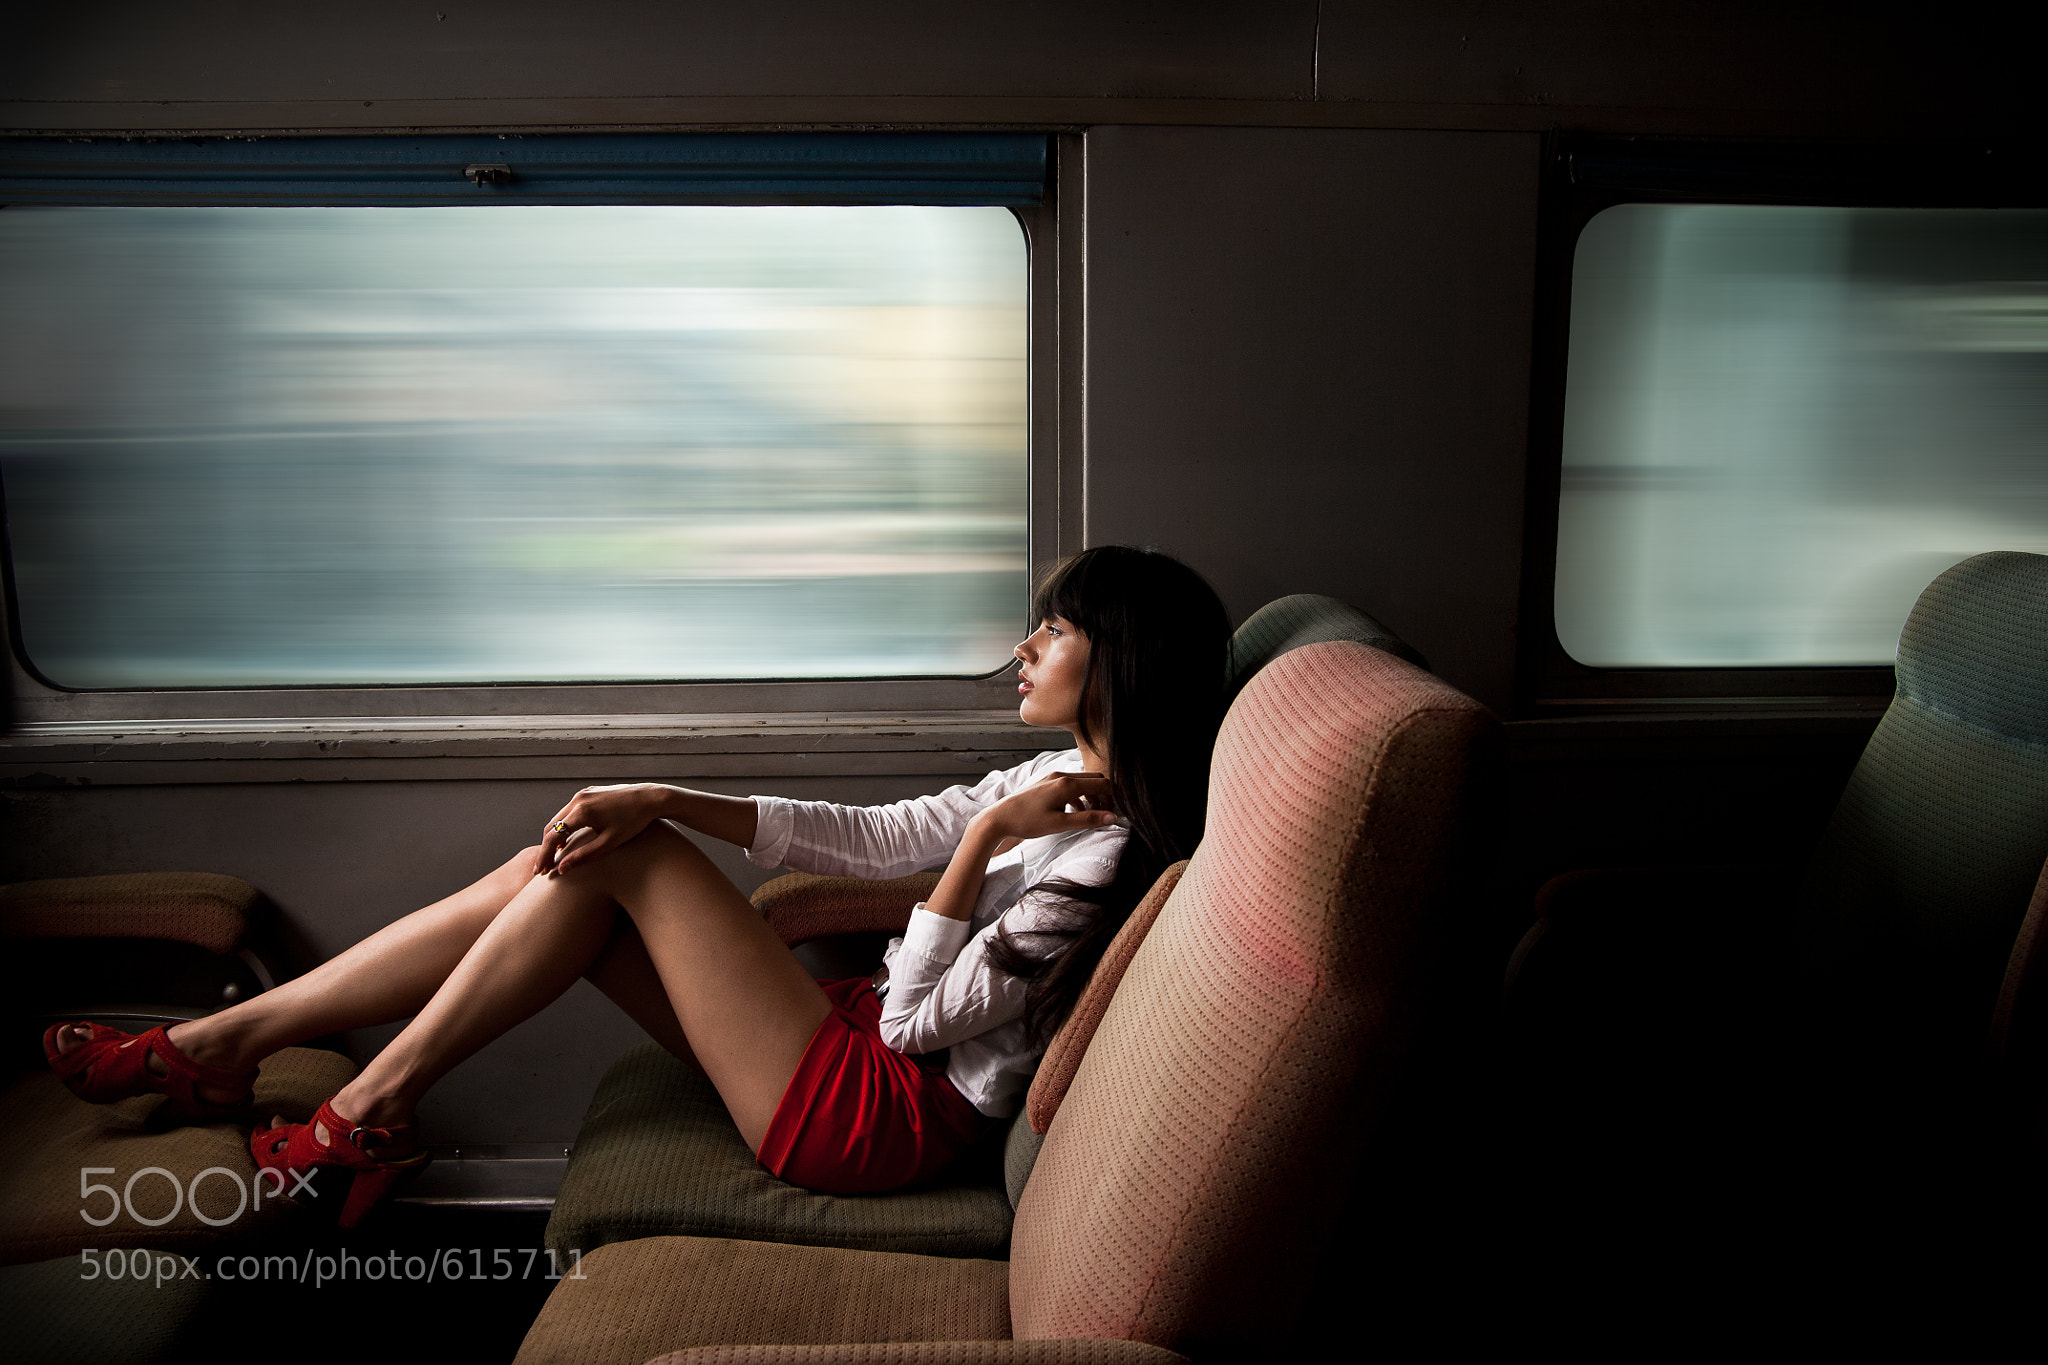 Photograph Commuter by Max Eremine on 500px